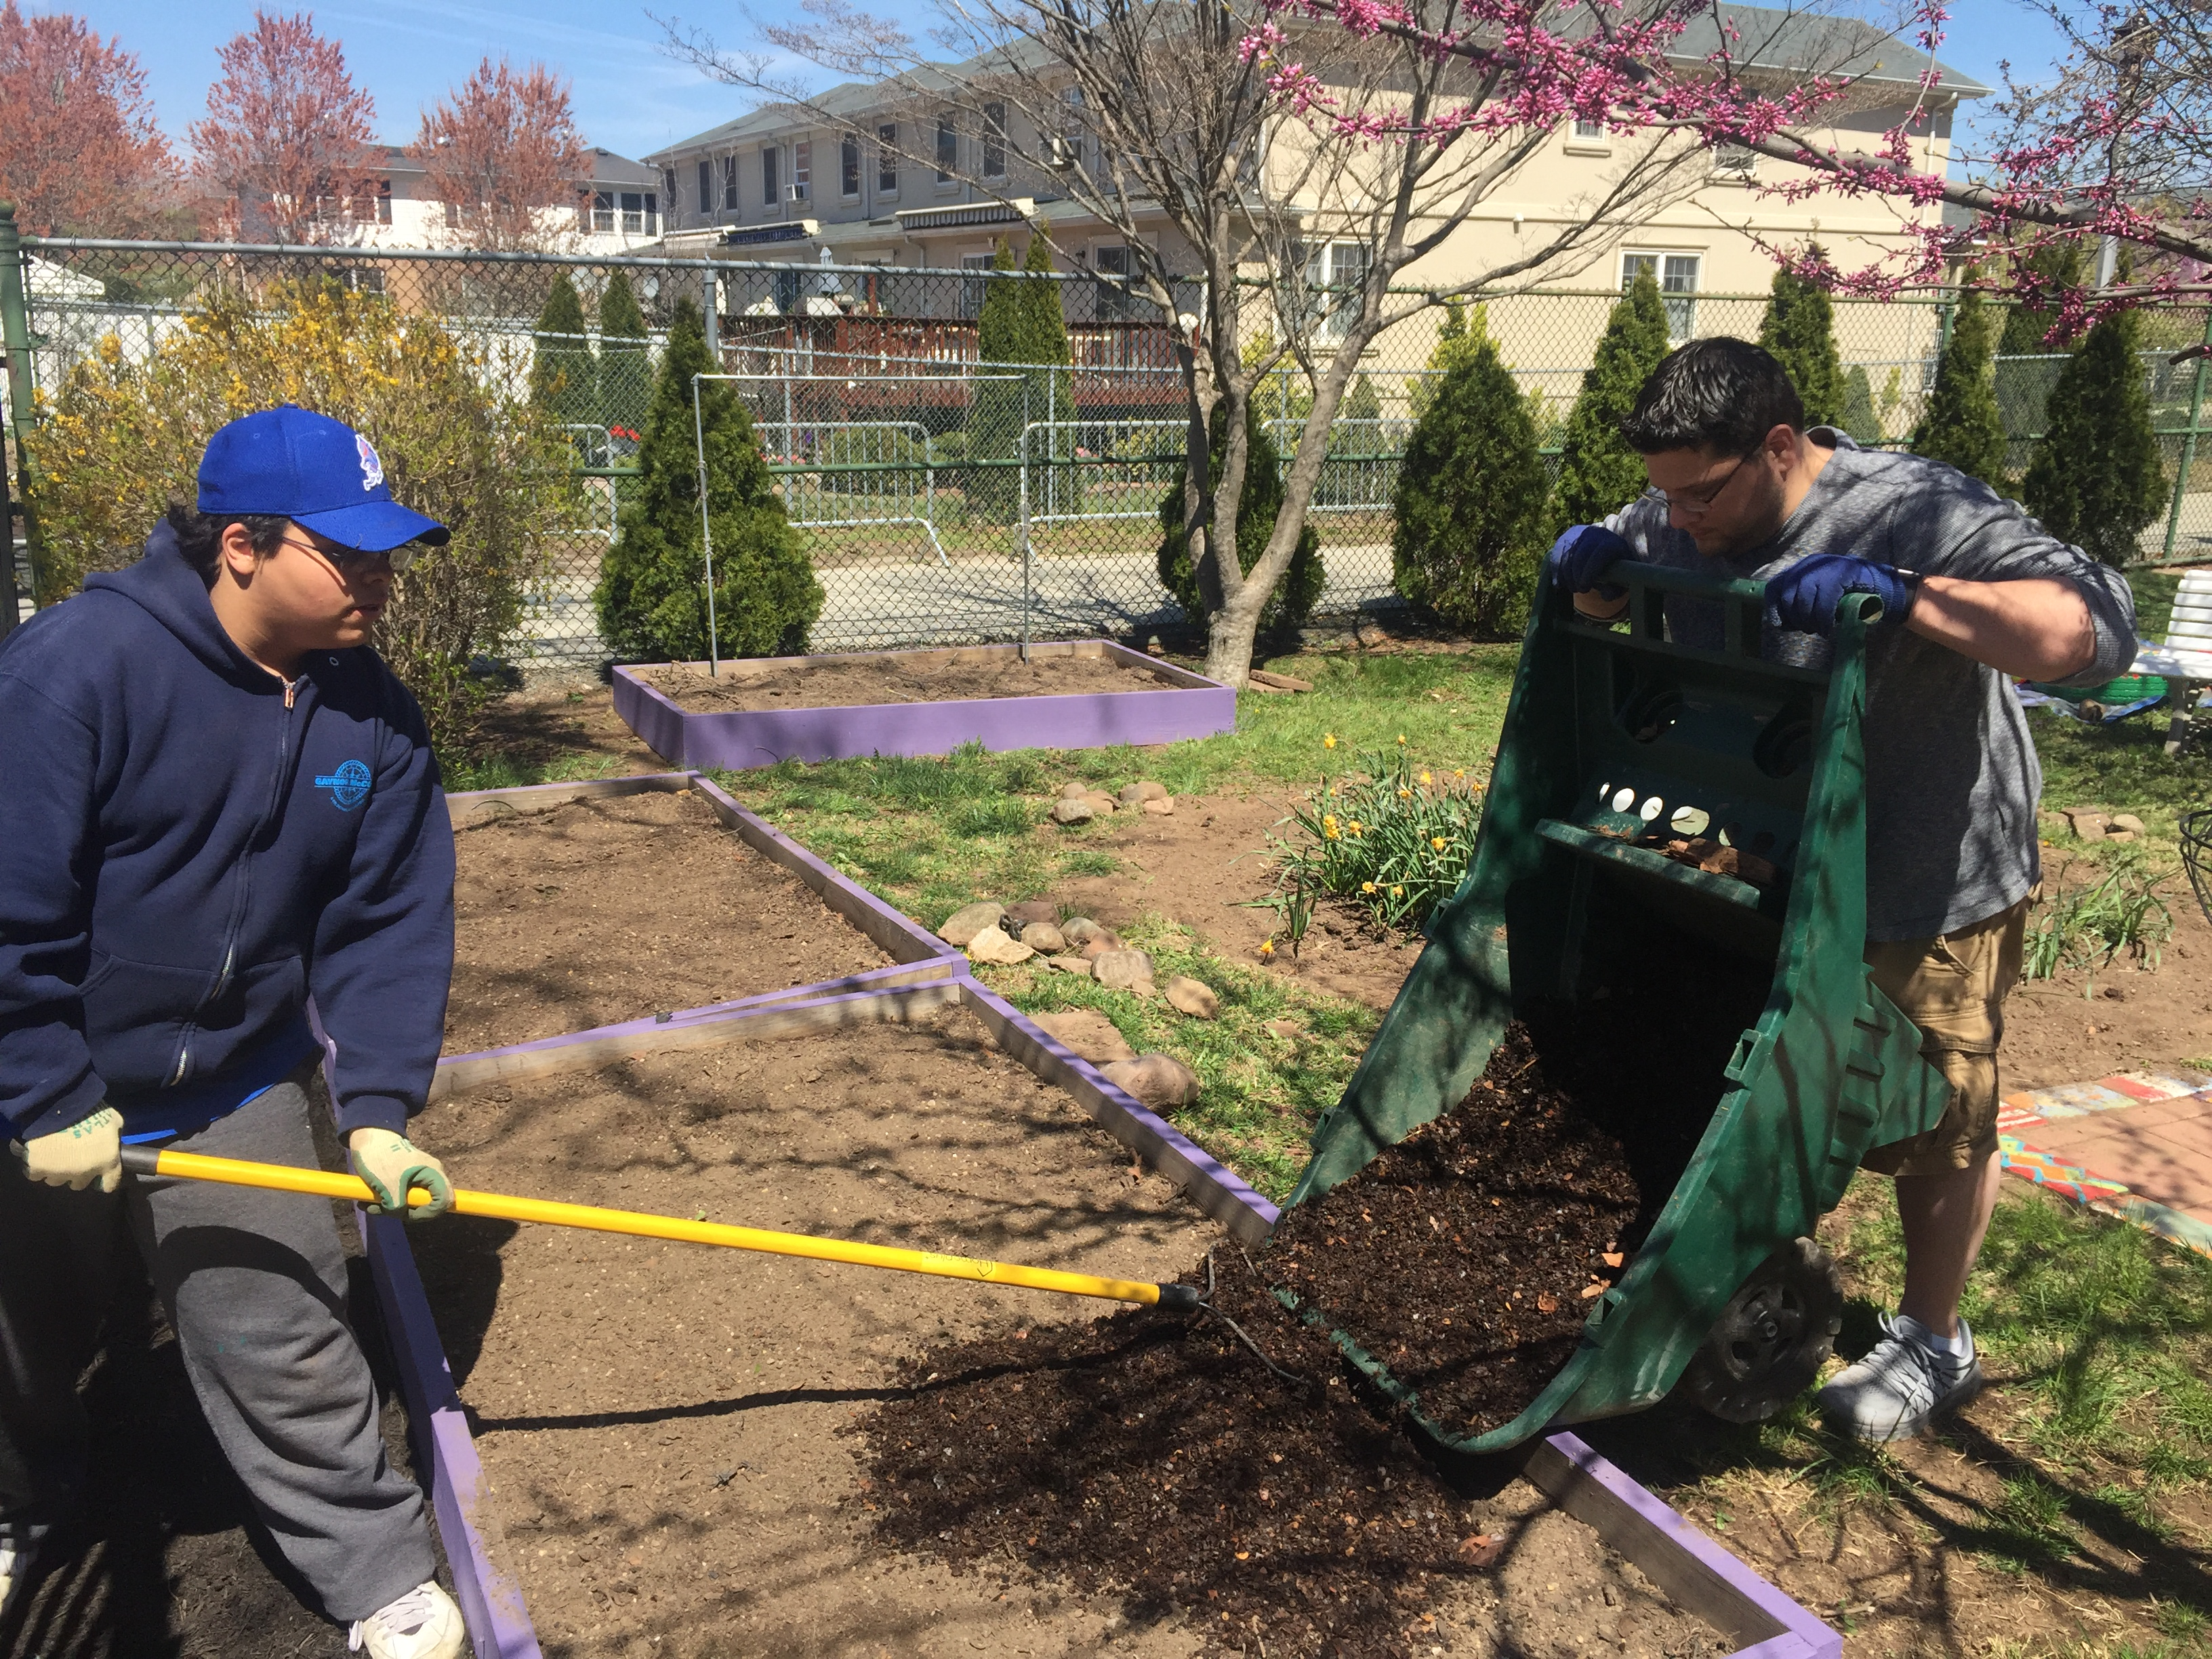 Turn & Learn Compost Work Days (NYC Compost Project)